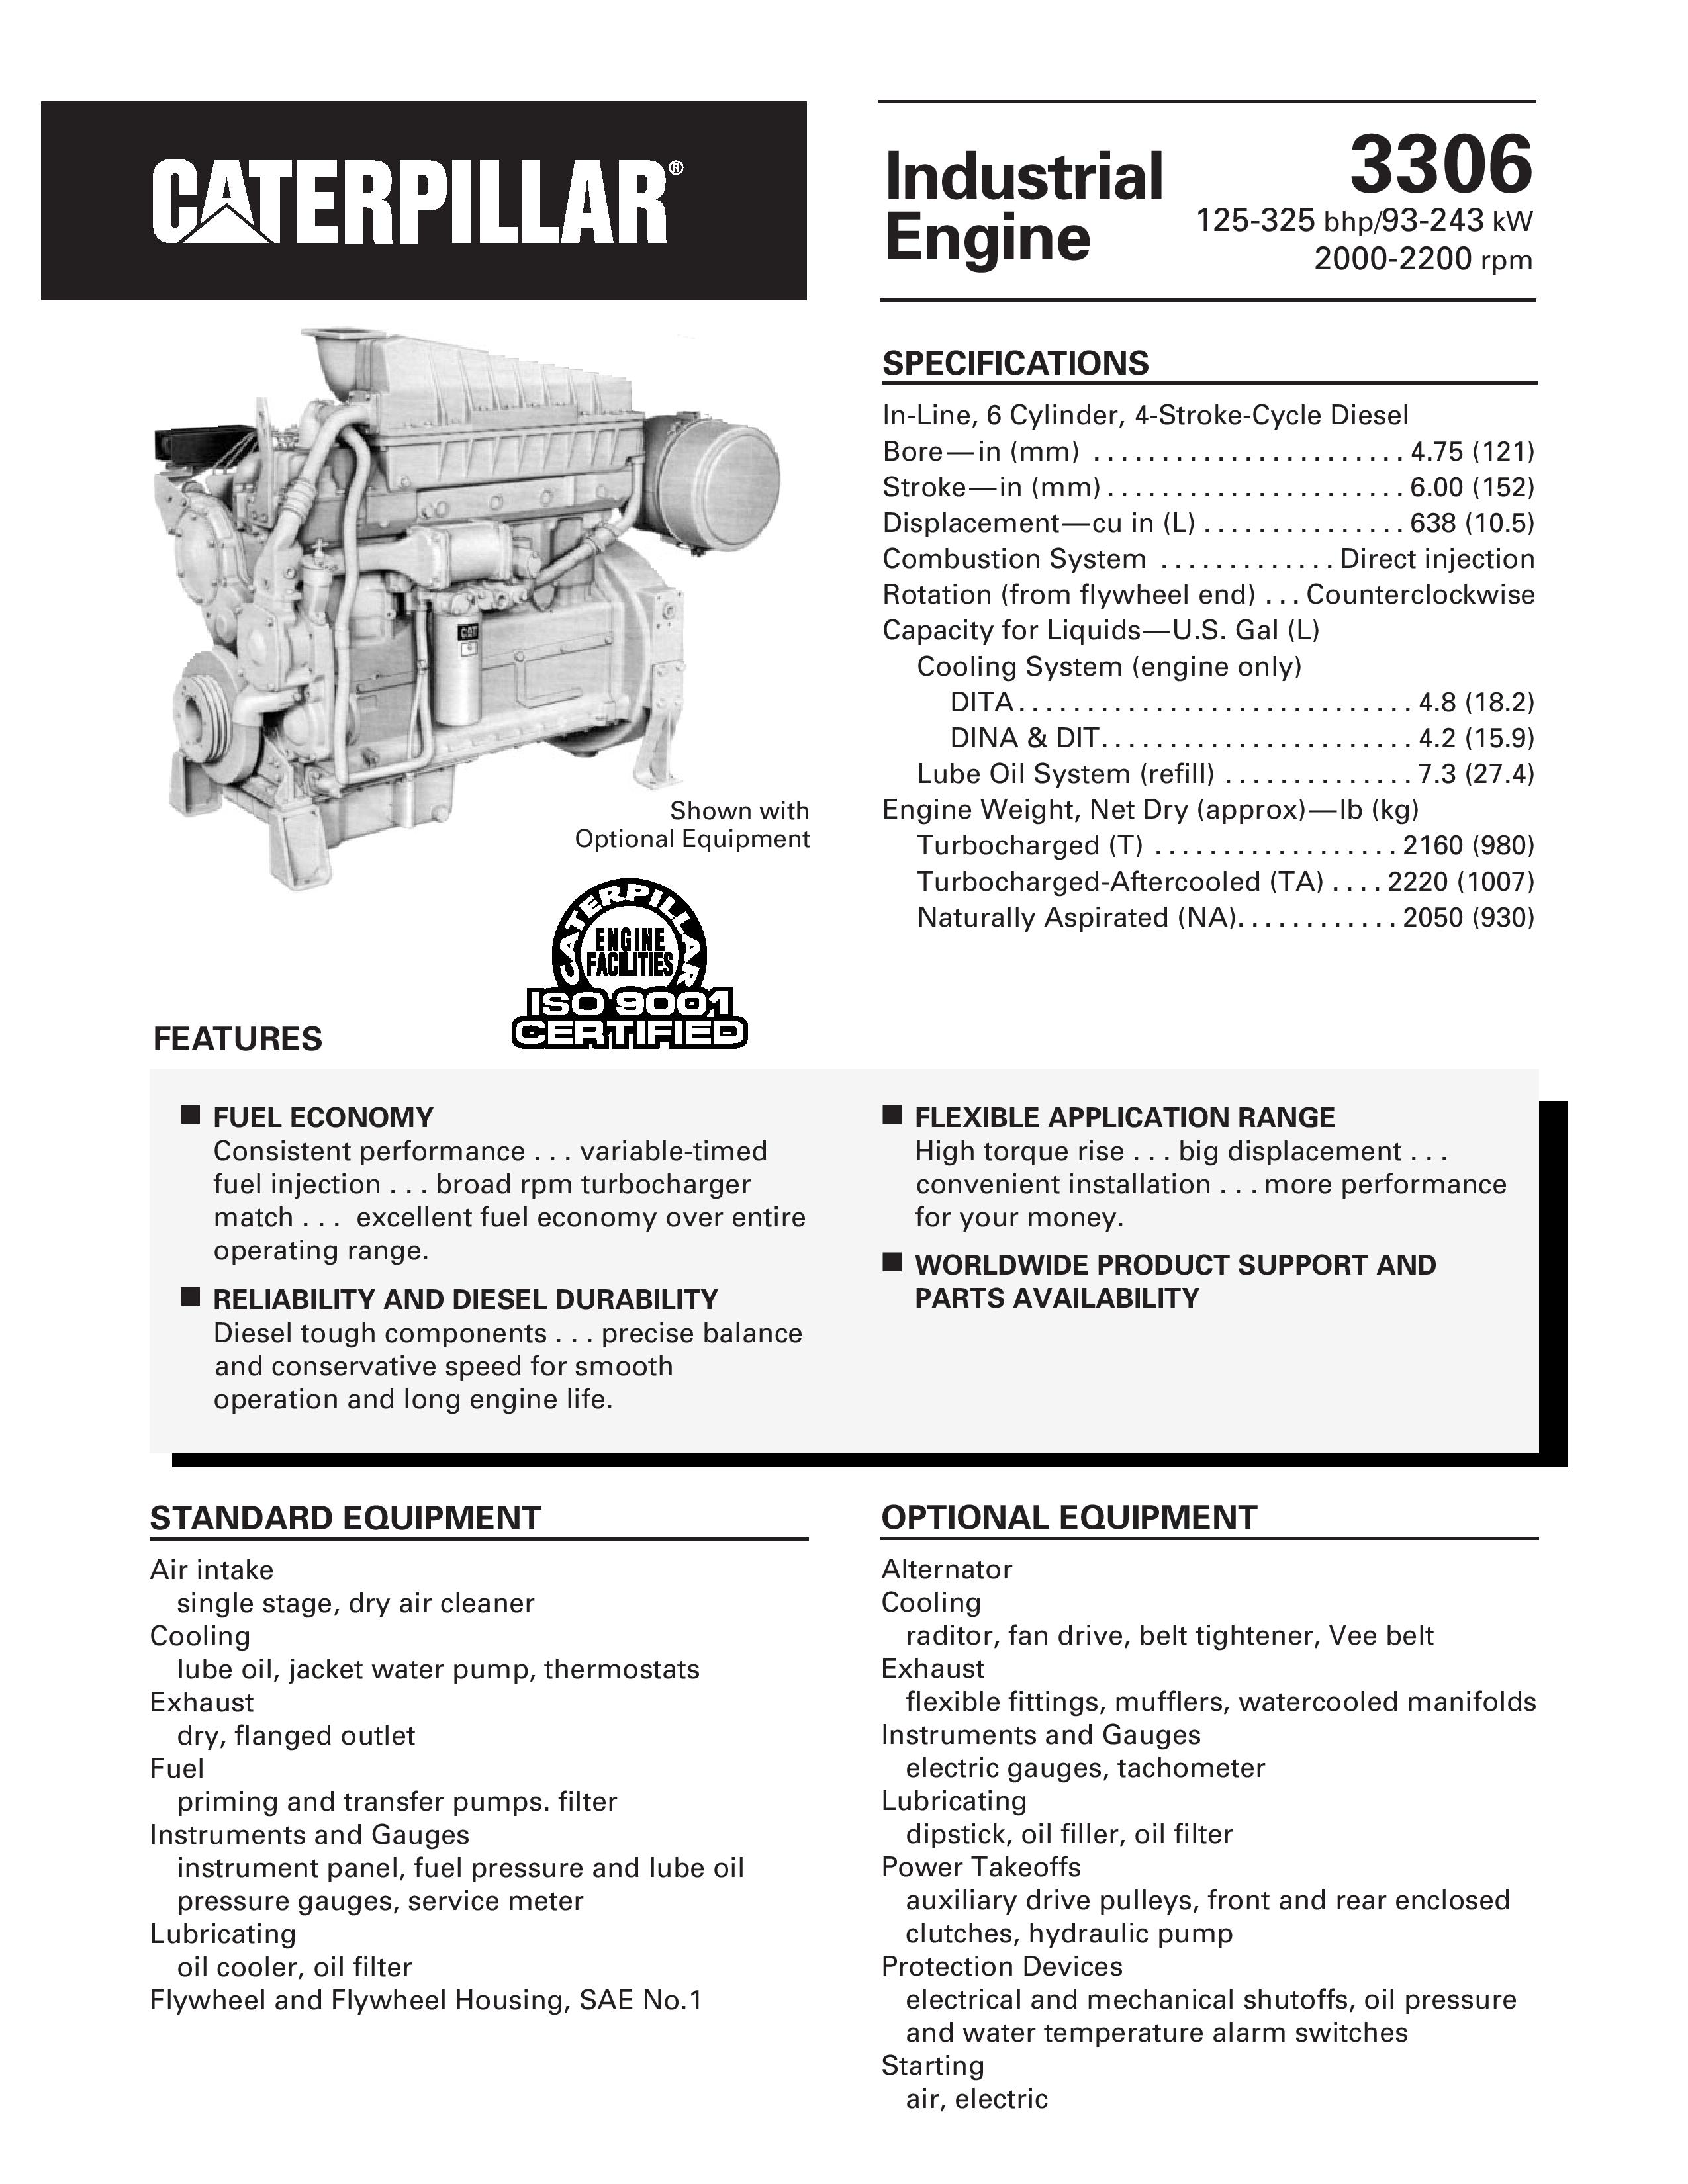 general electric motor wiring diagram delco remy 24 volt alternator caterpillar diesel engine supplier worldwide | used cat 3306t for sale